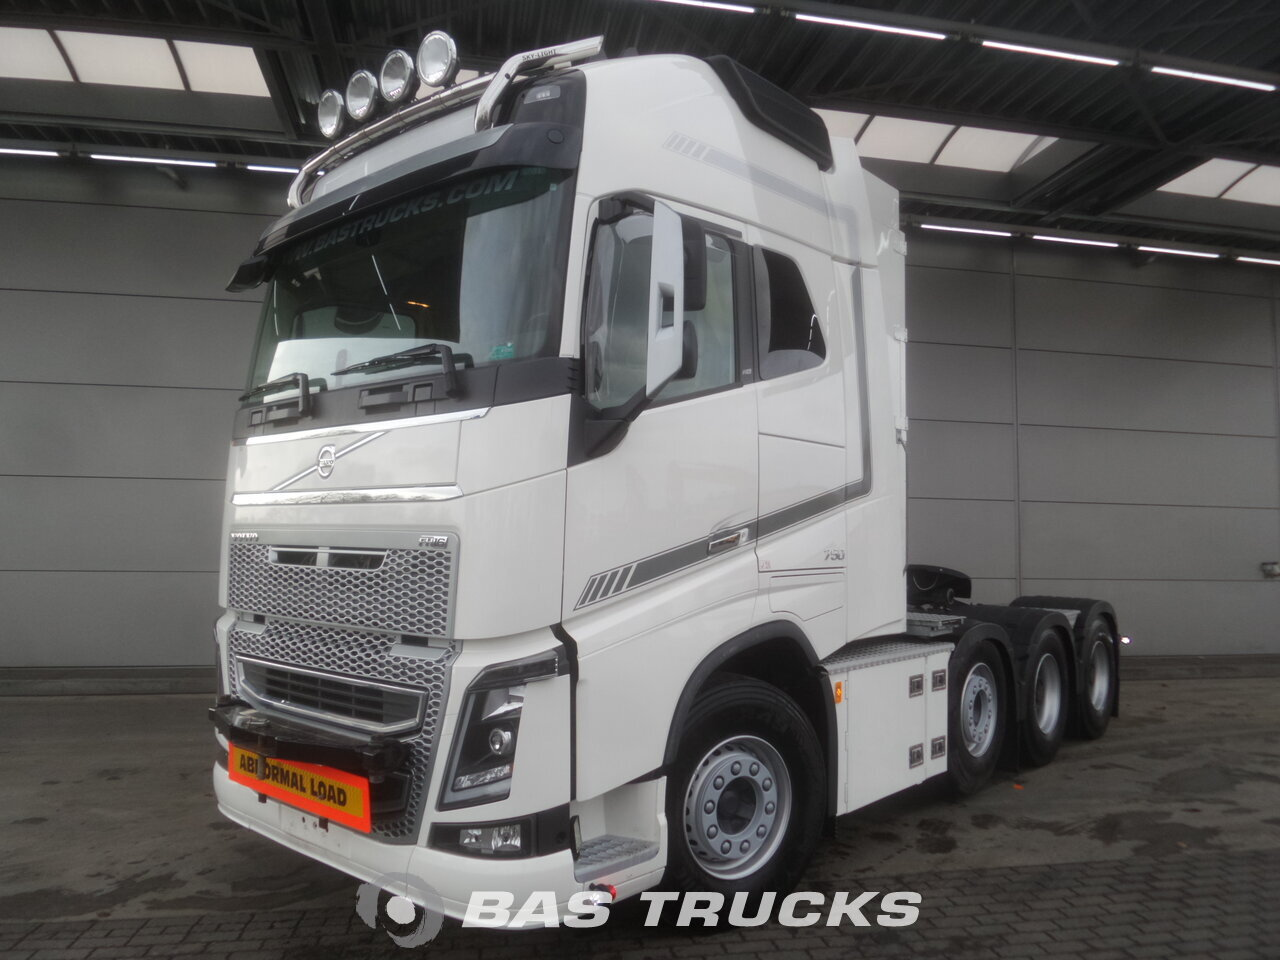 For Sale At Bas Trucks Volvo Fh16 750 Xl 8x4 08 2016